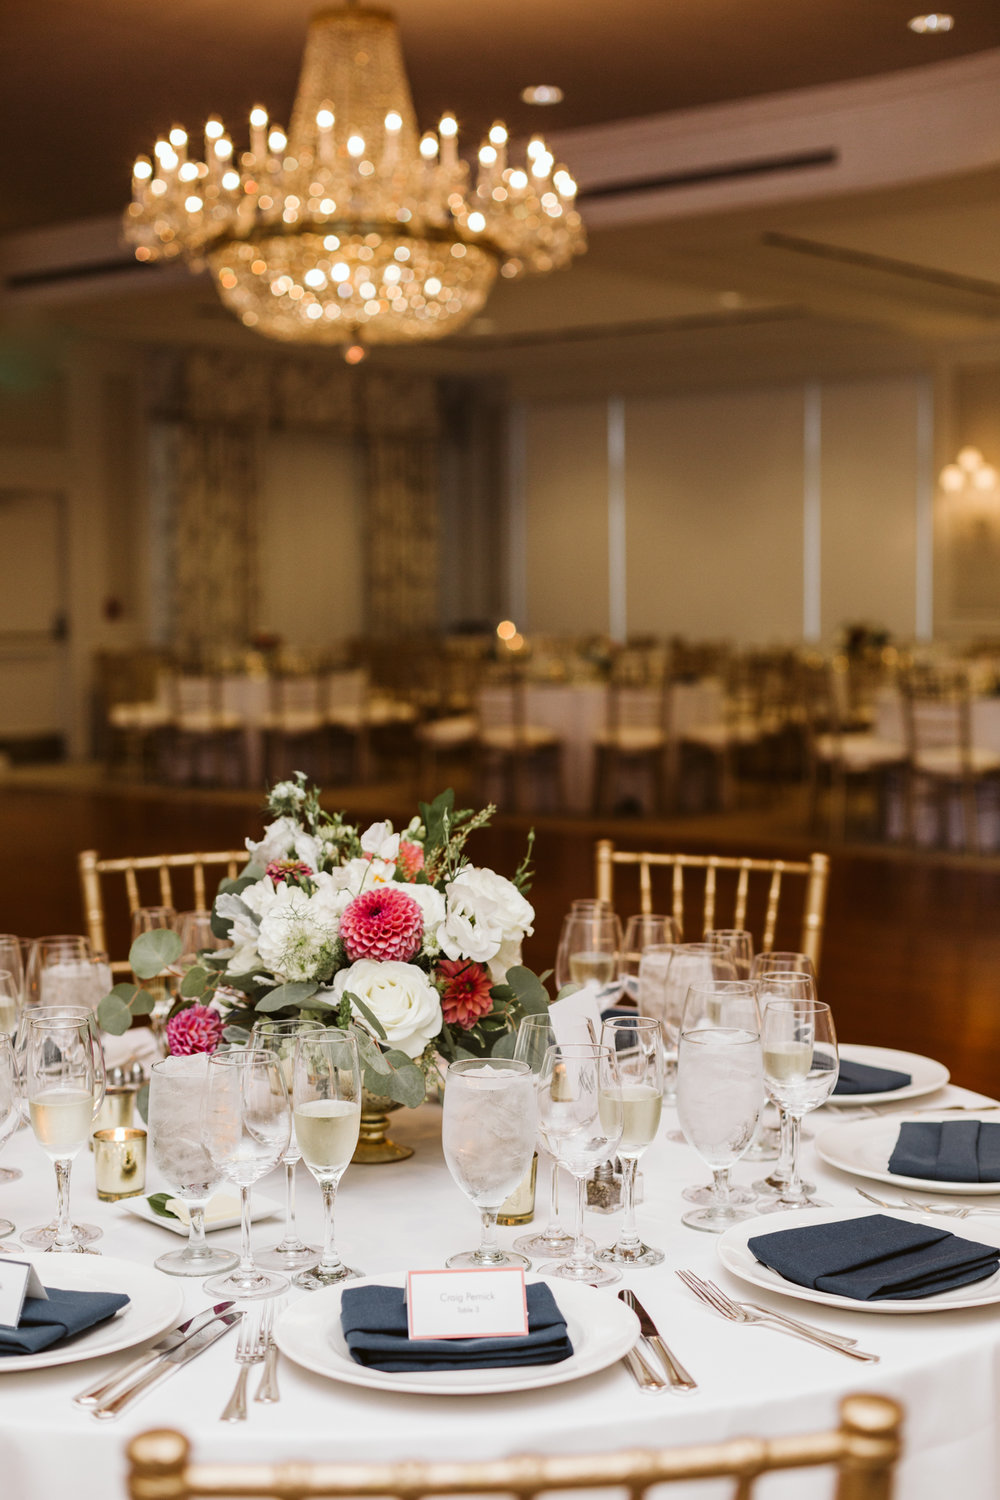 Elegant, Columbia Country Club, Chevy Chase Maryland, Baltimore Wedding Photographer, Classic, Traditional, Wedding Reception Centerpieces,